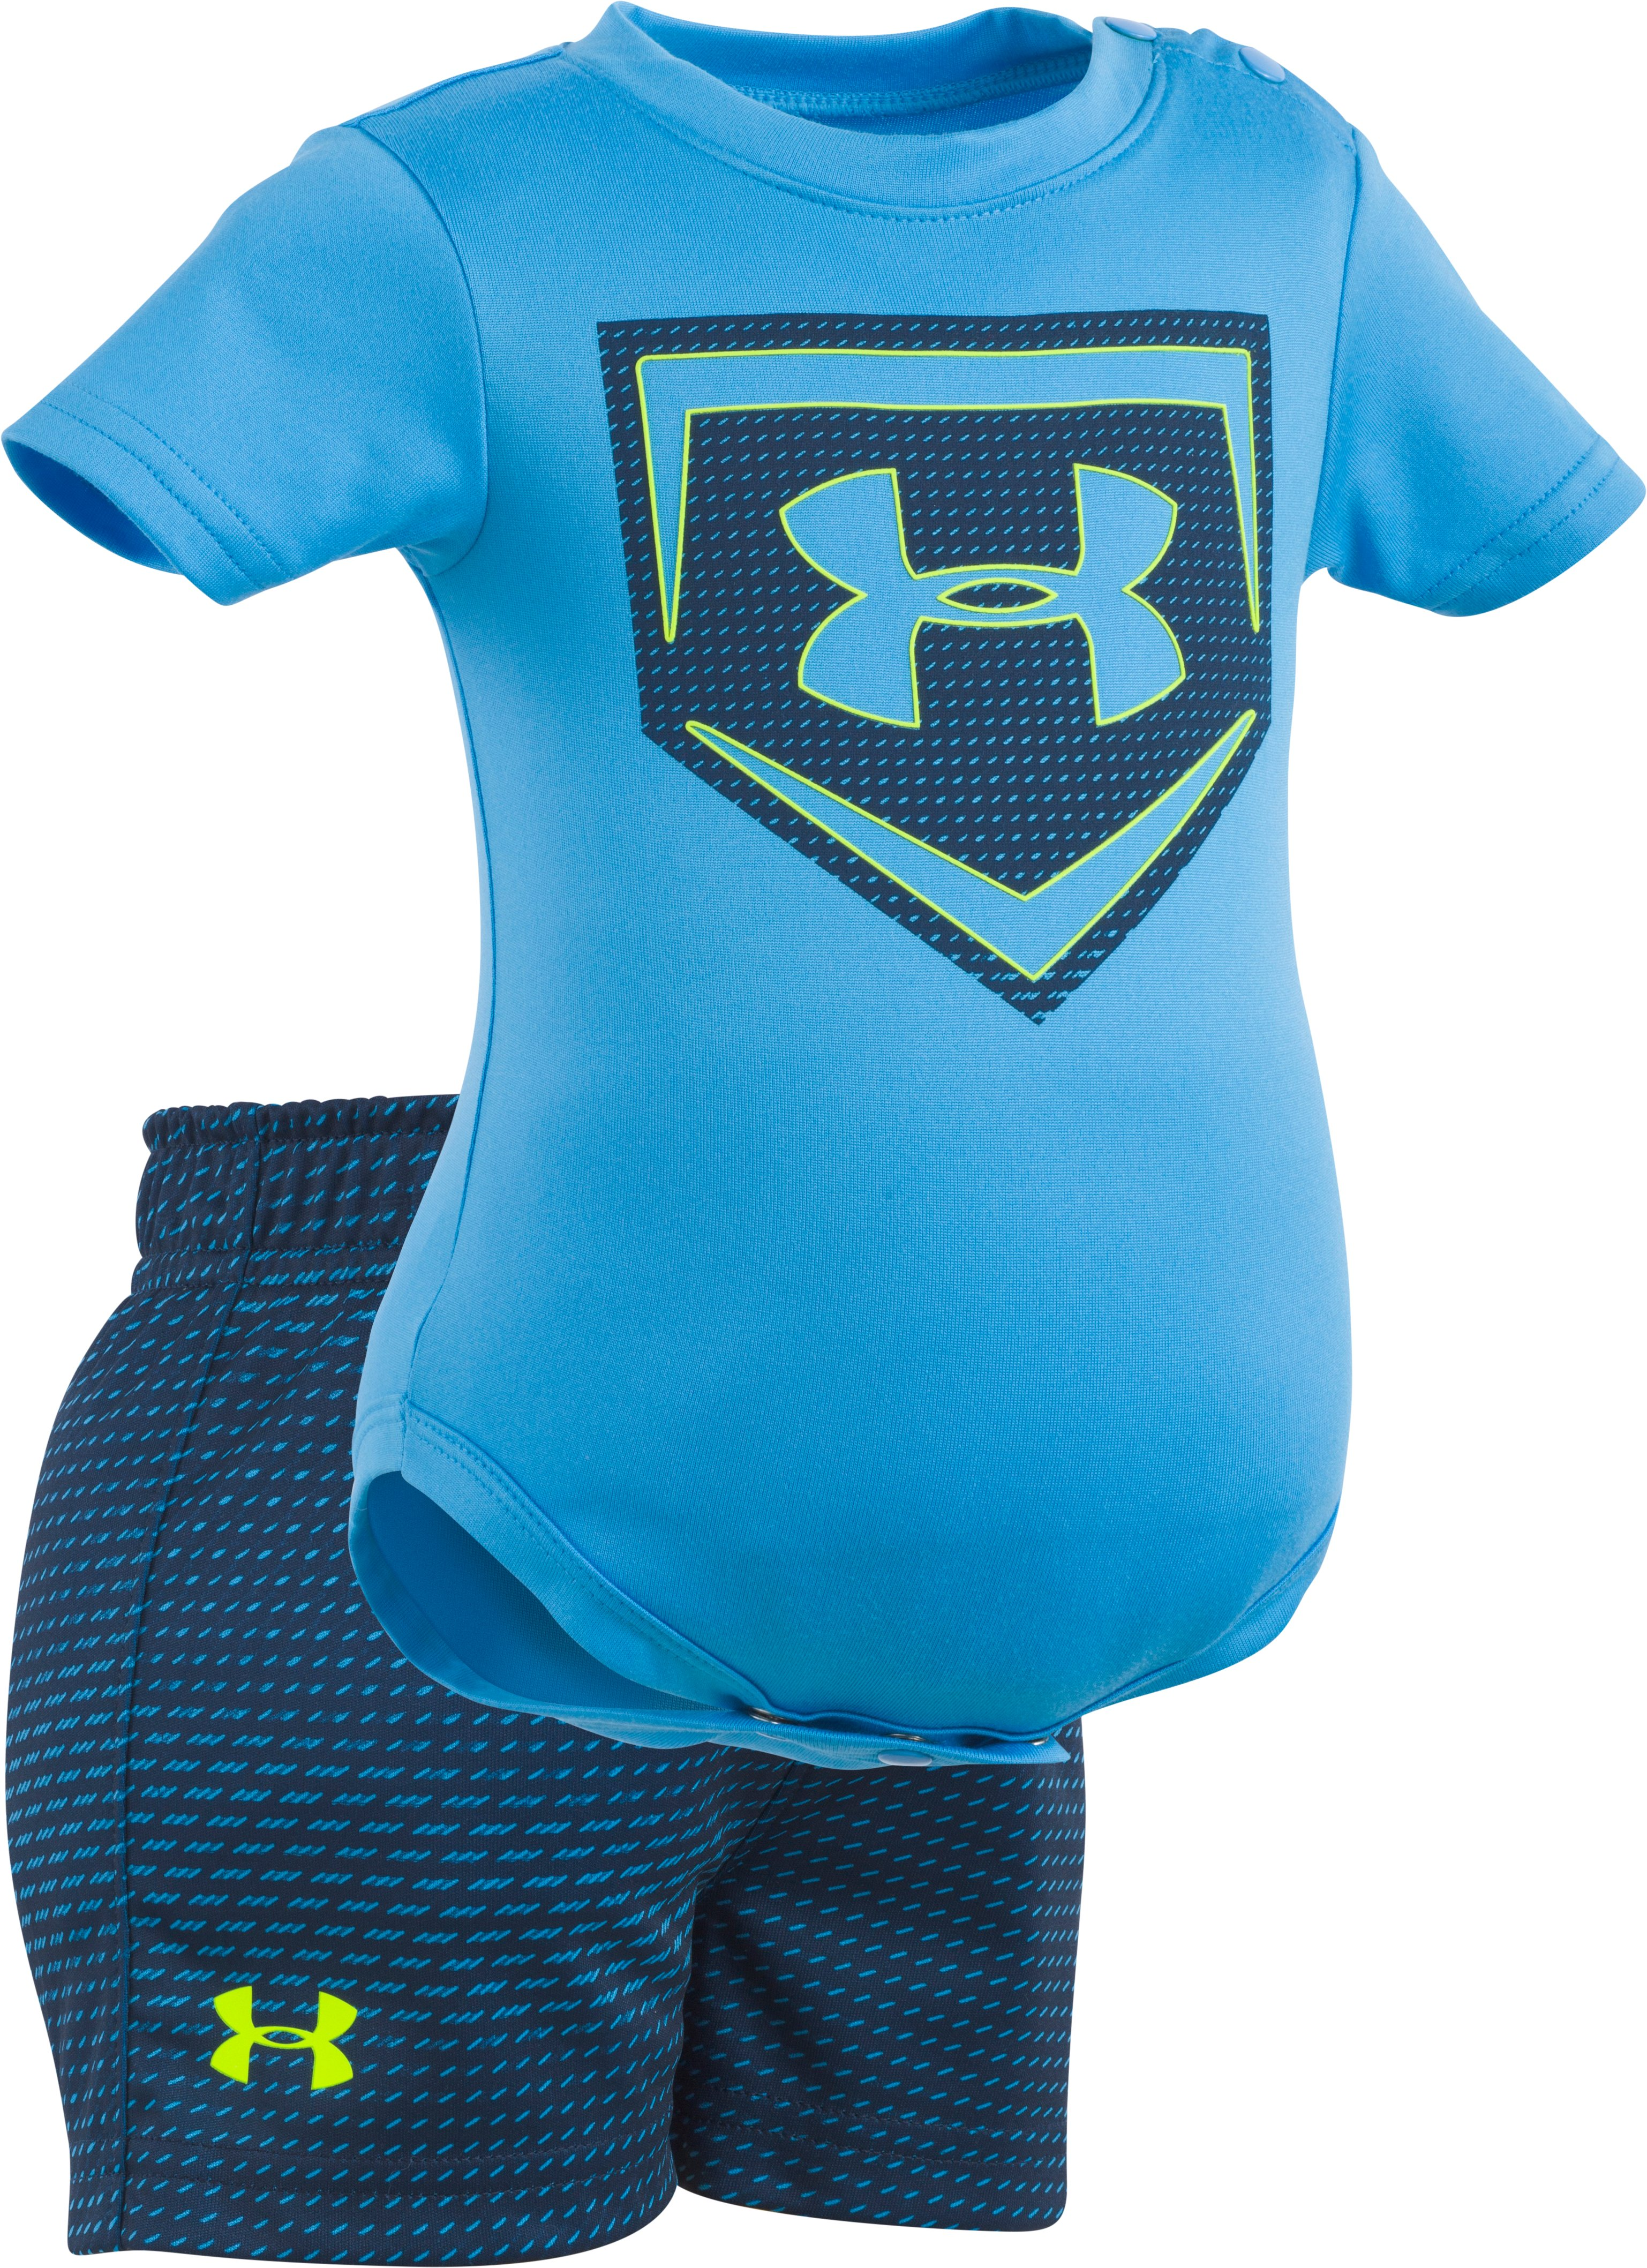 Boys' Newborn UA Sync Homeplate Set, Canoe Blue, zoomed